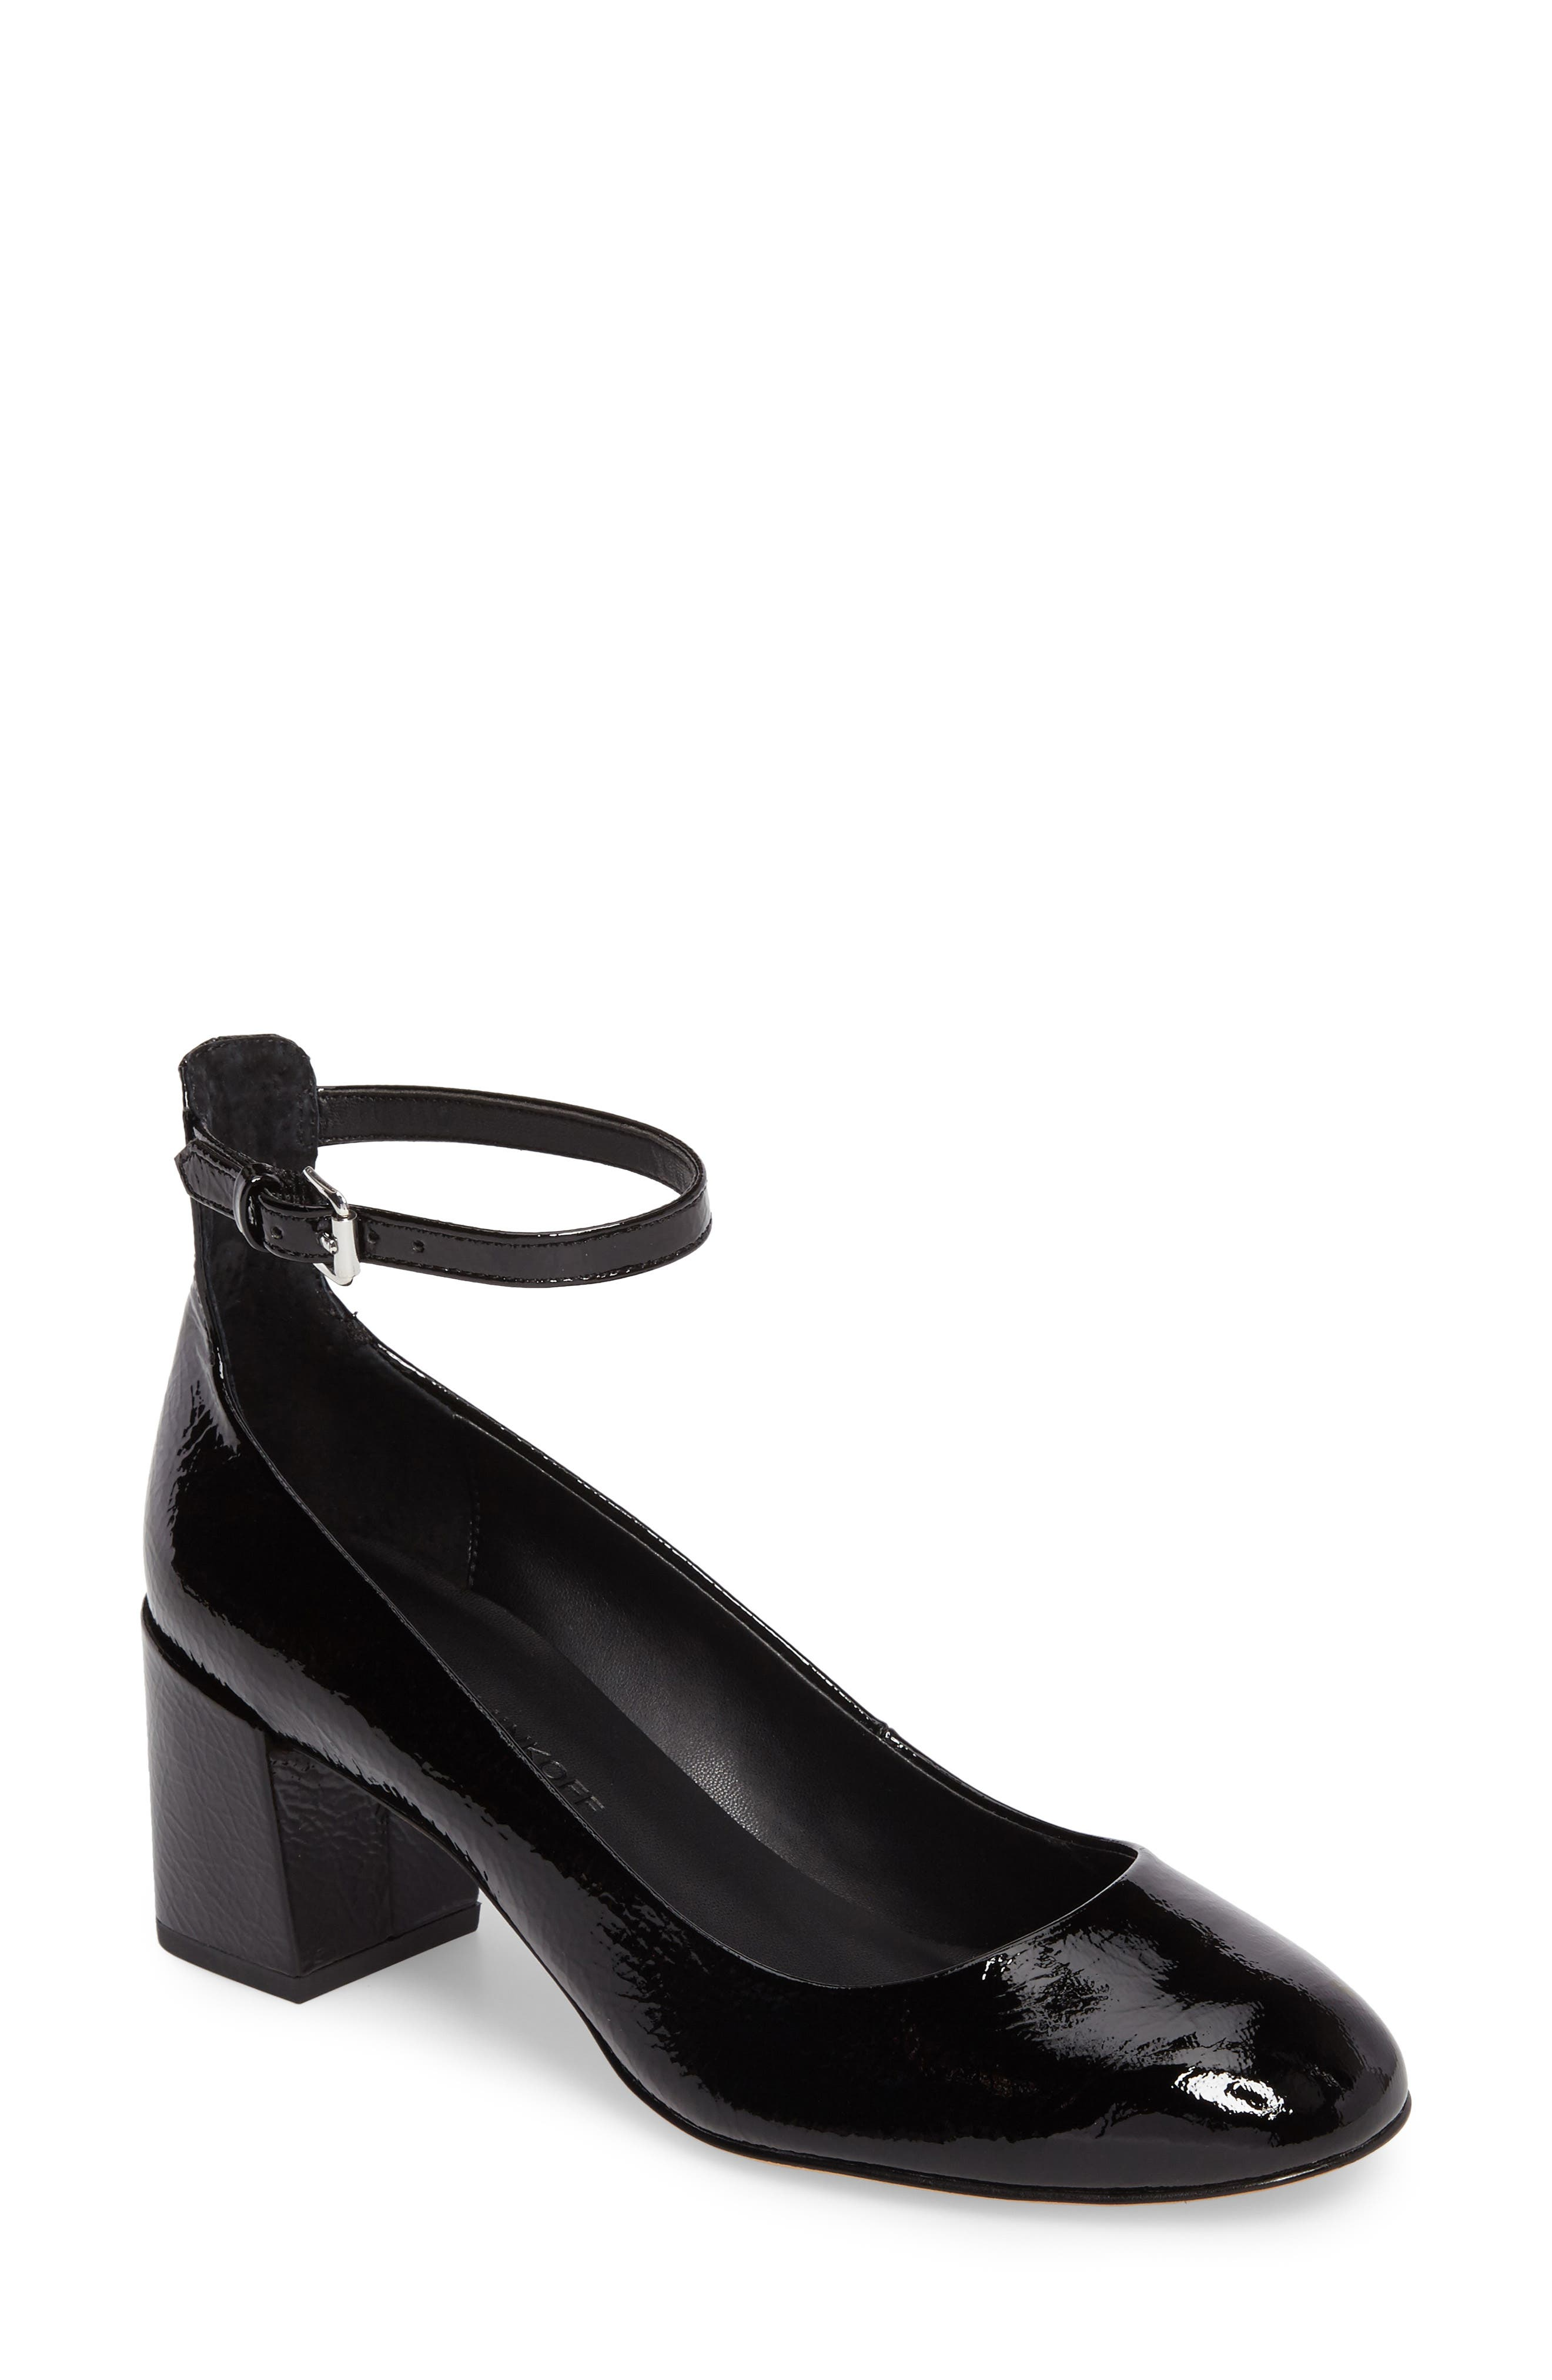 Bridget Ankle Strap Pump,                         Main,                         color, 001